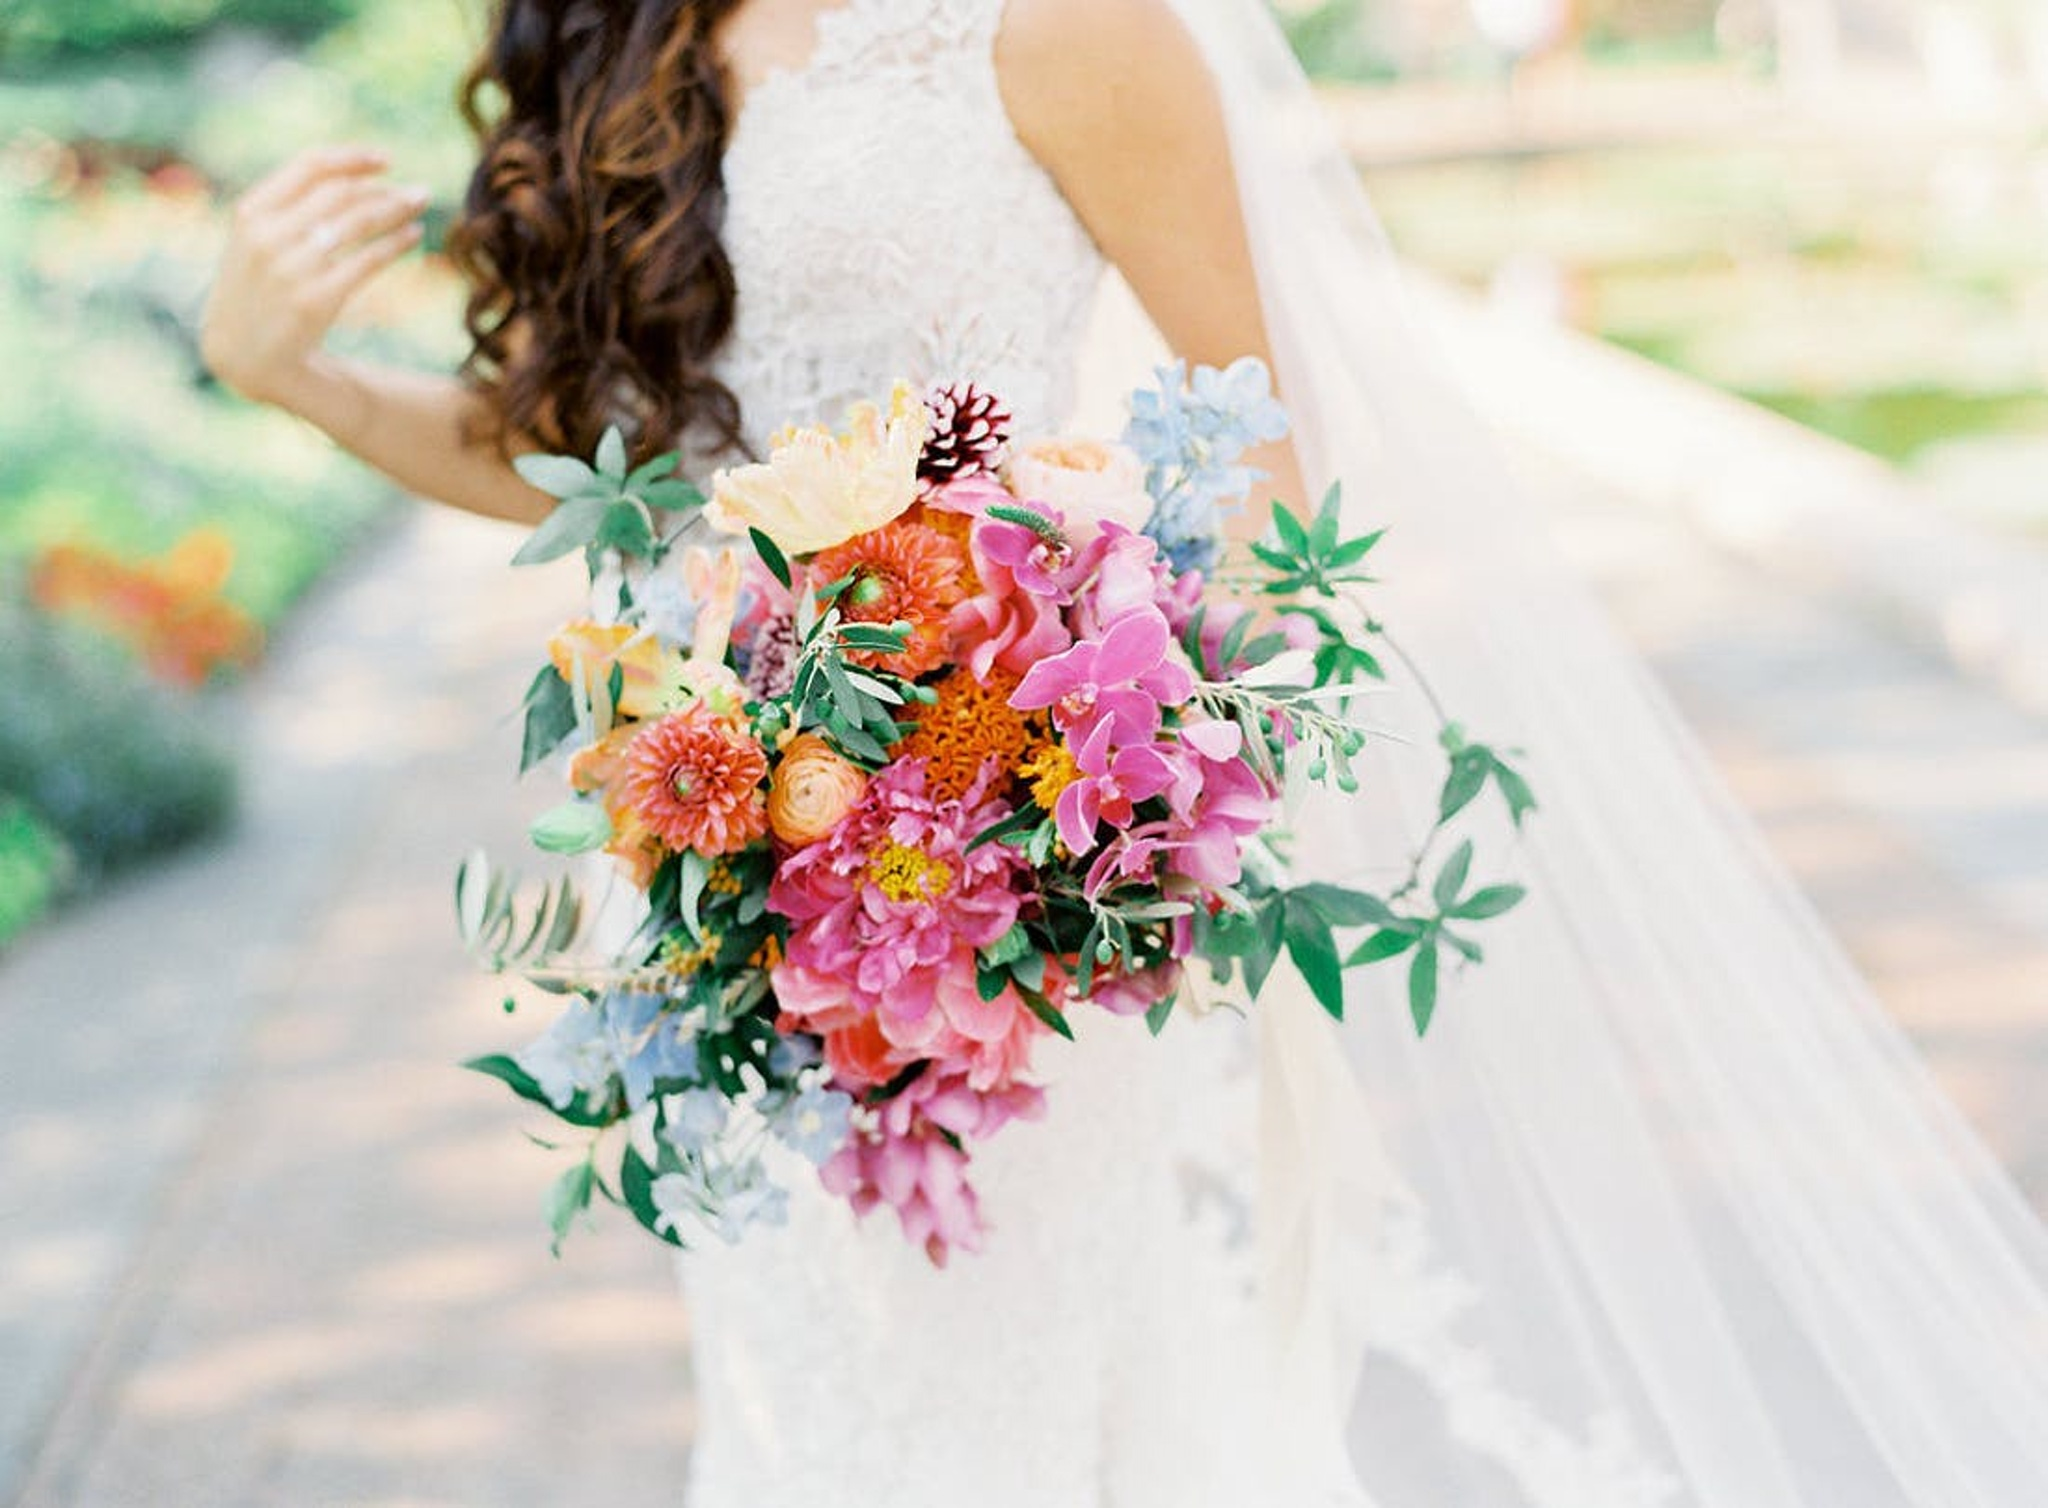 Bride with colorful floral bouquet